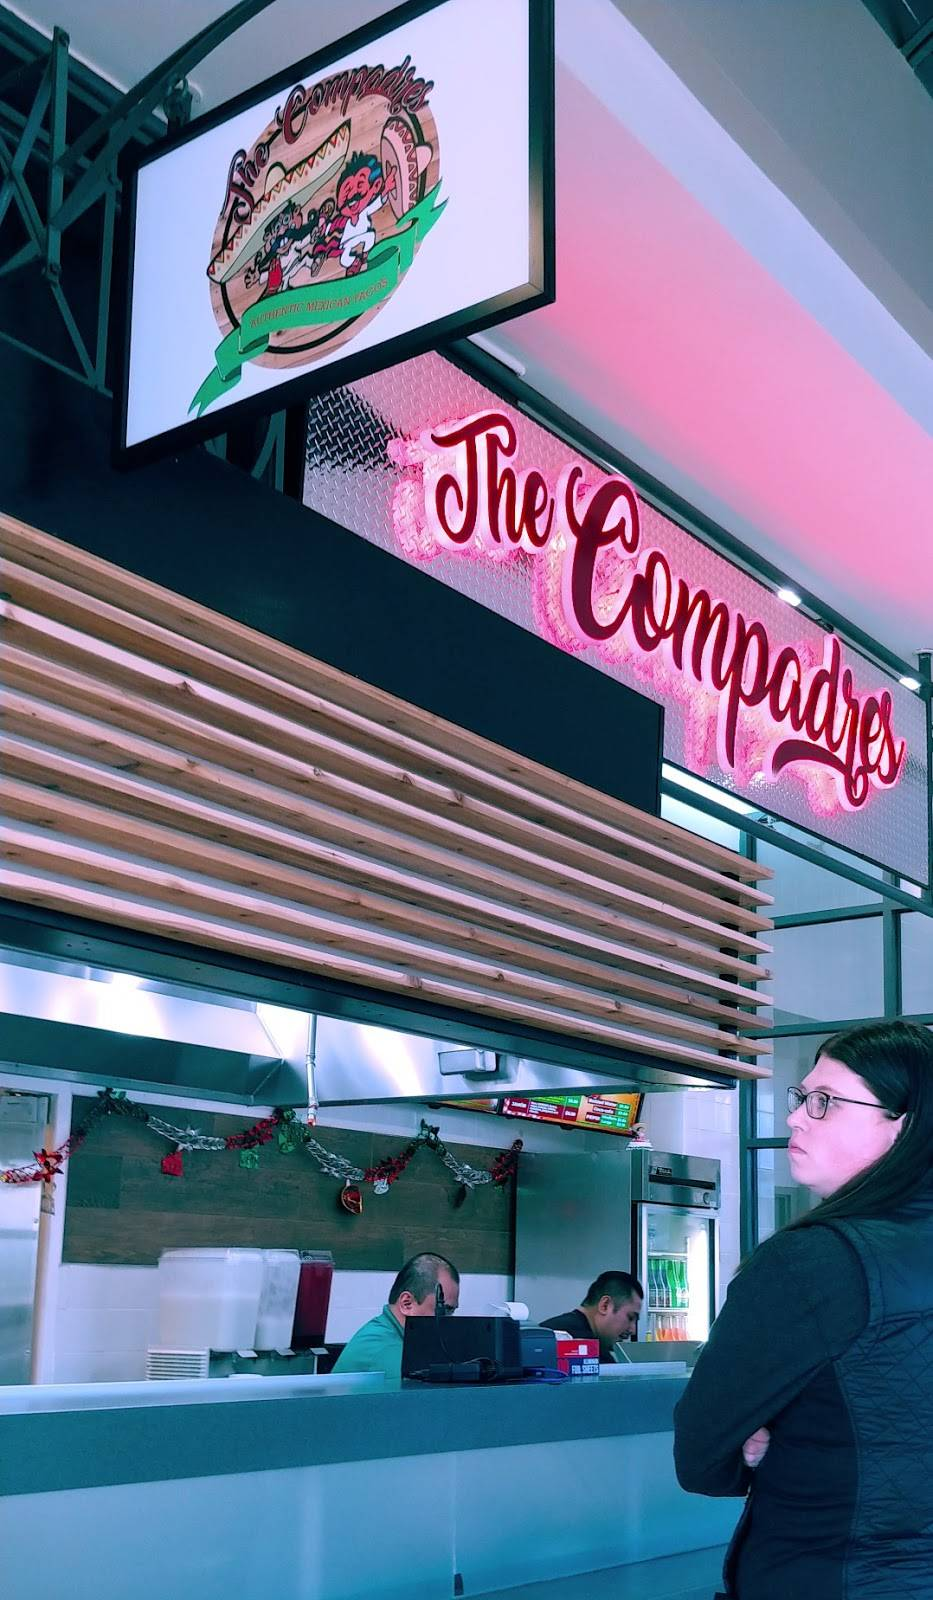 The Compadres   restaurant   52 US-14, Rochester, MN 55902, USA   5072587878 OR +1 507-258-7878